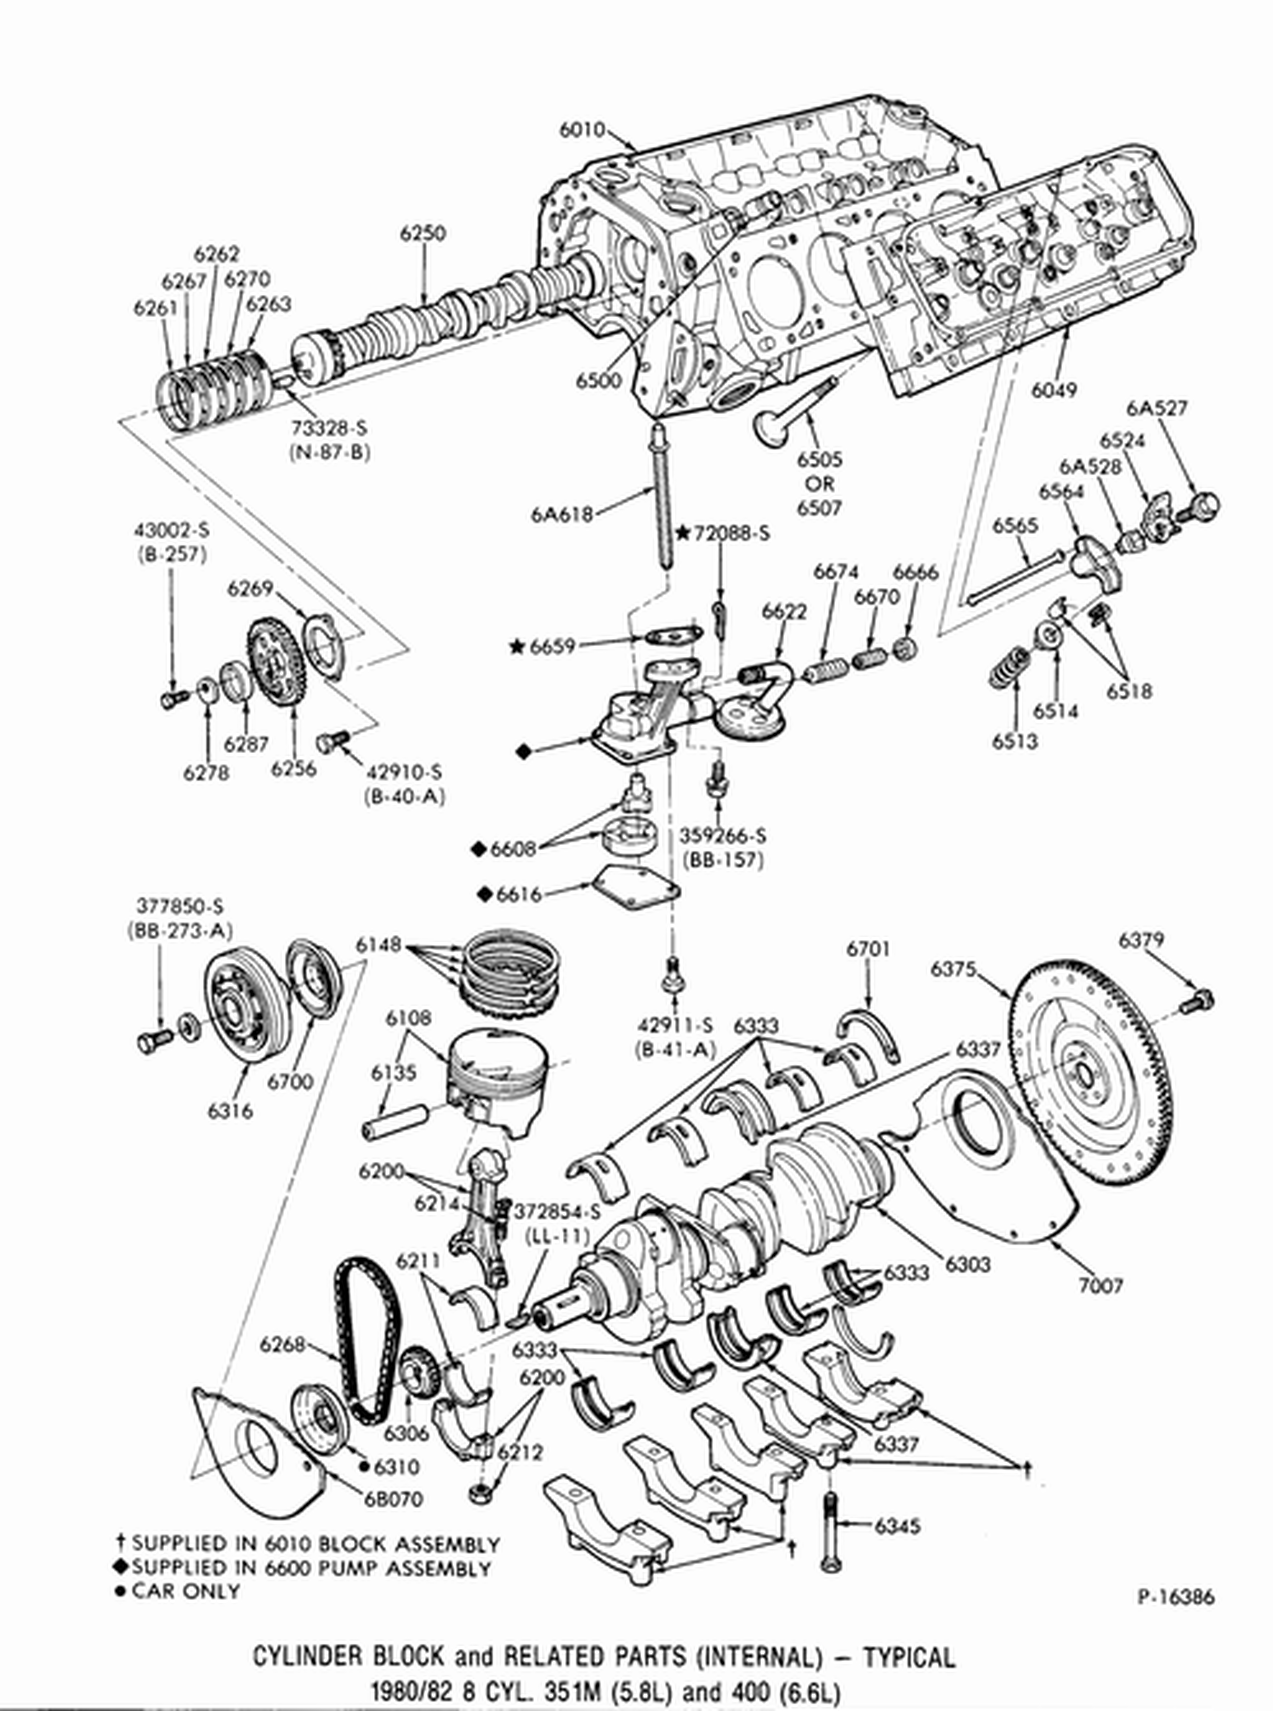 ☑ 1978 Ford 351 Engine Diagram HD Quality ☑ lotz-diagram.radd.frDiagram Database - Radd